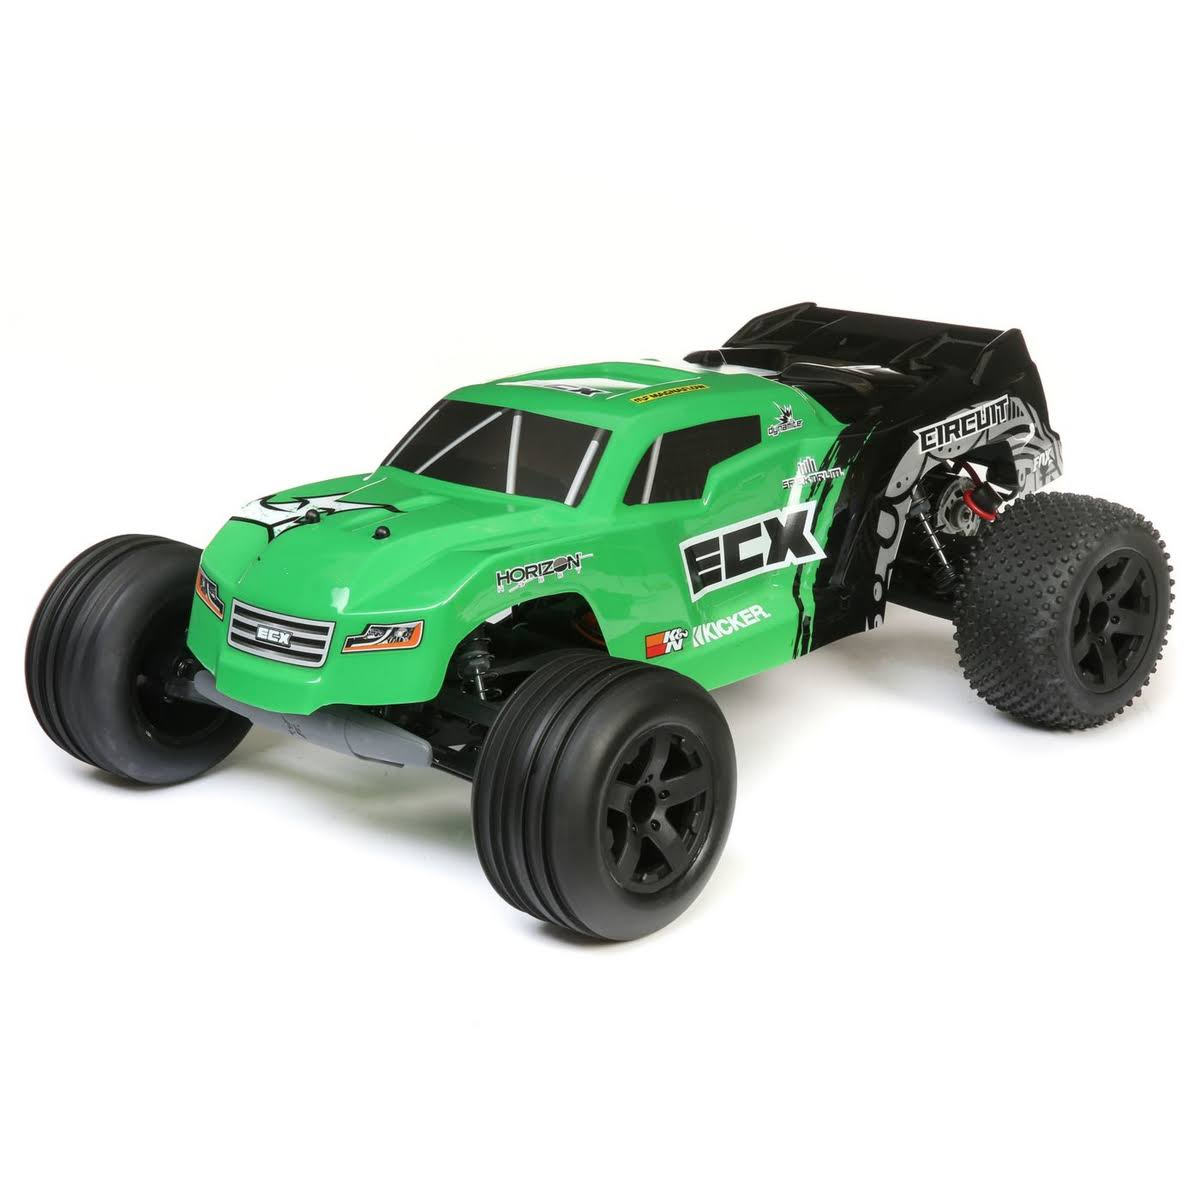 ECX Circuit 2wd Stadium Truck Brushed RTR RC Model Kit - Green, 1:10 Scale